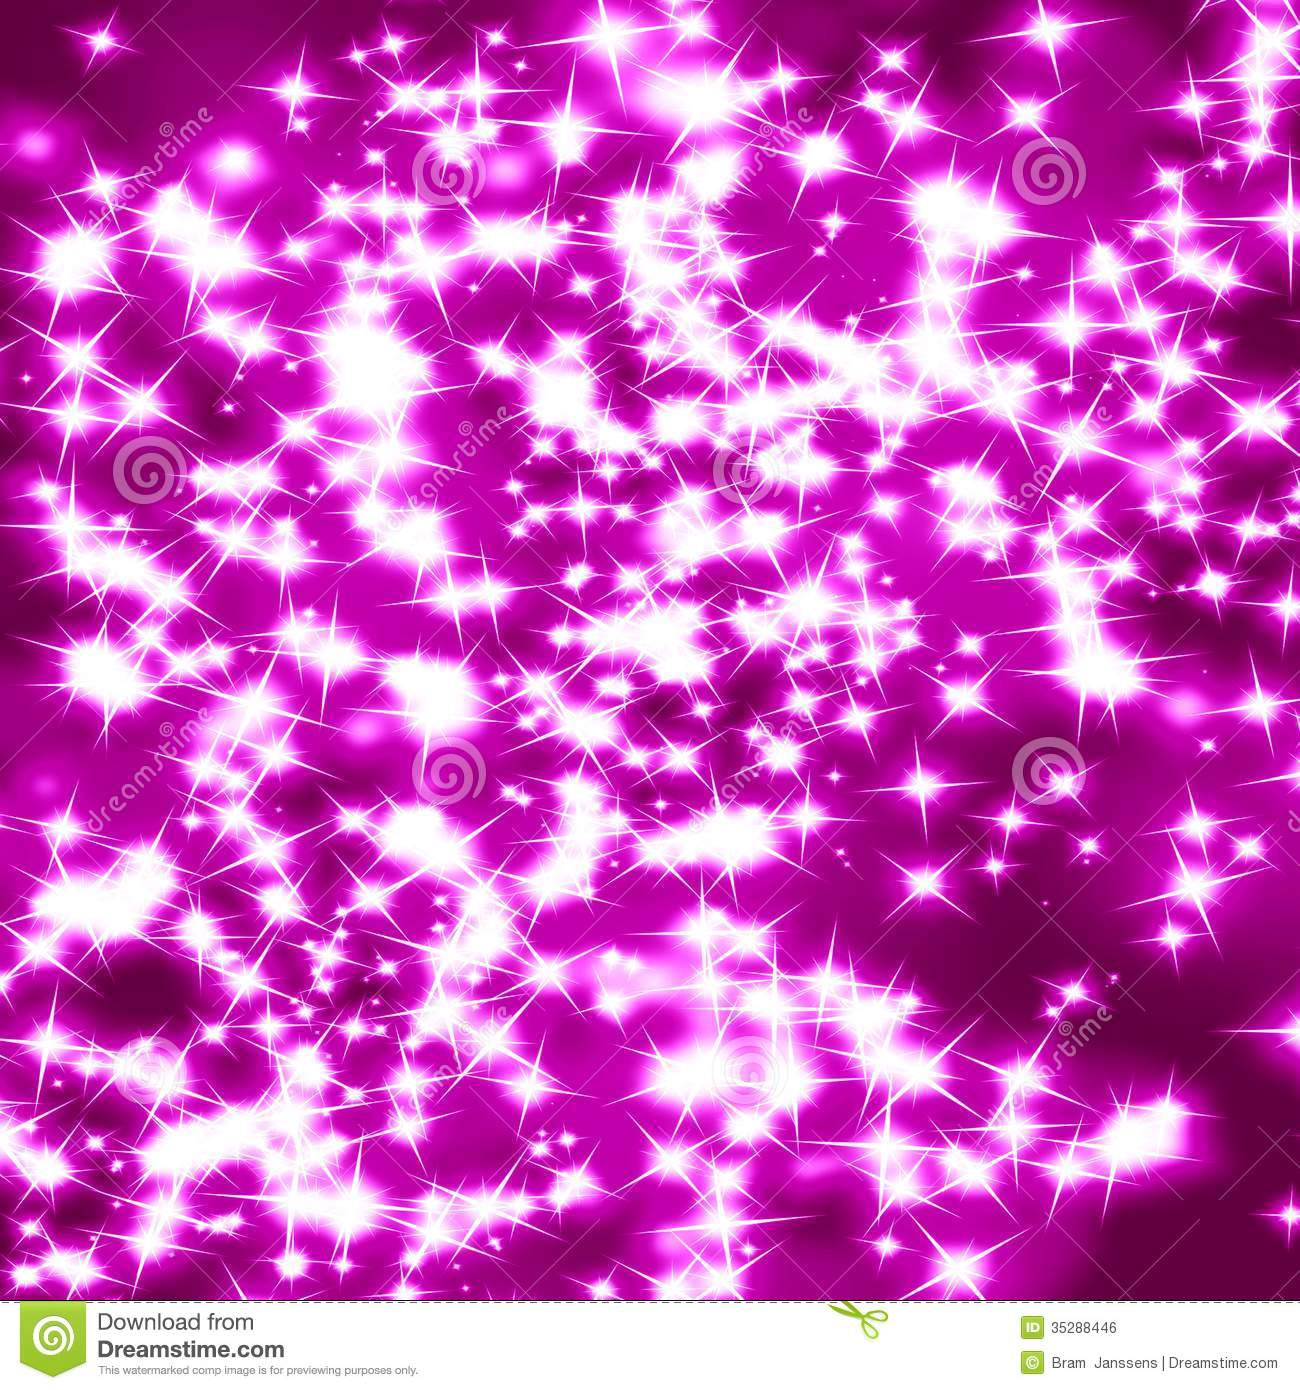 Unduh 770+ Background Pink Glowing Terbaik